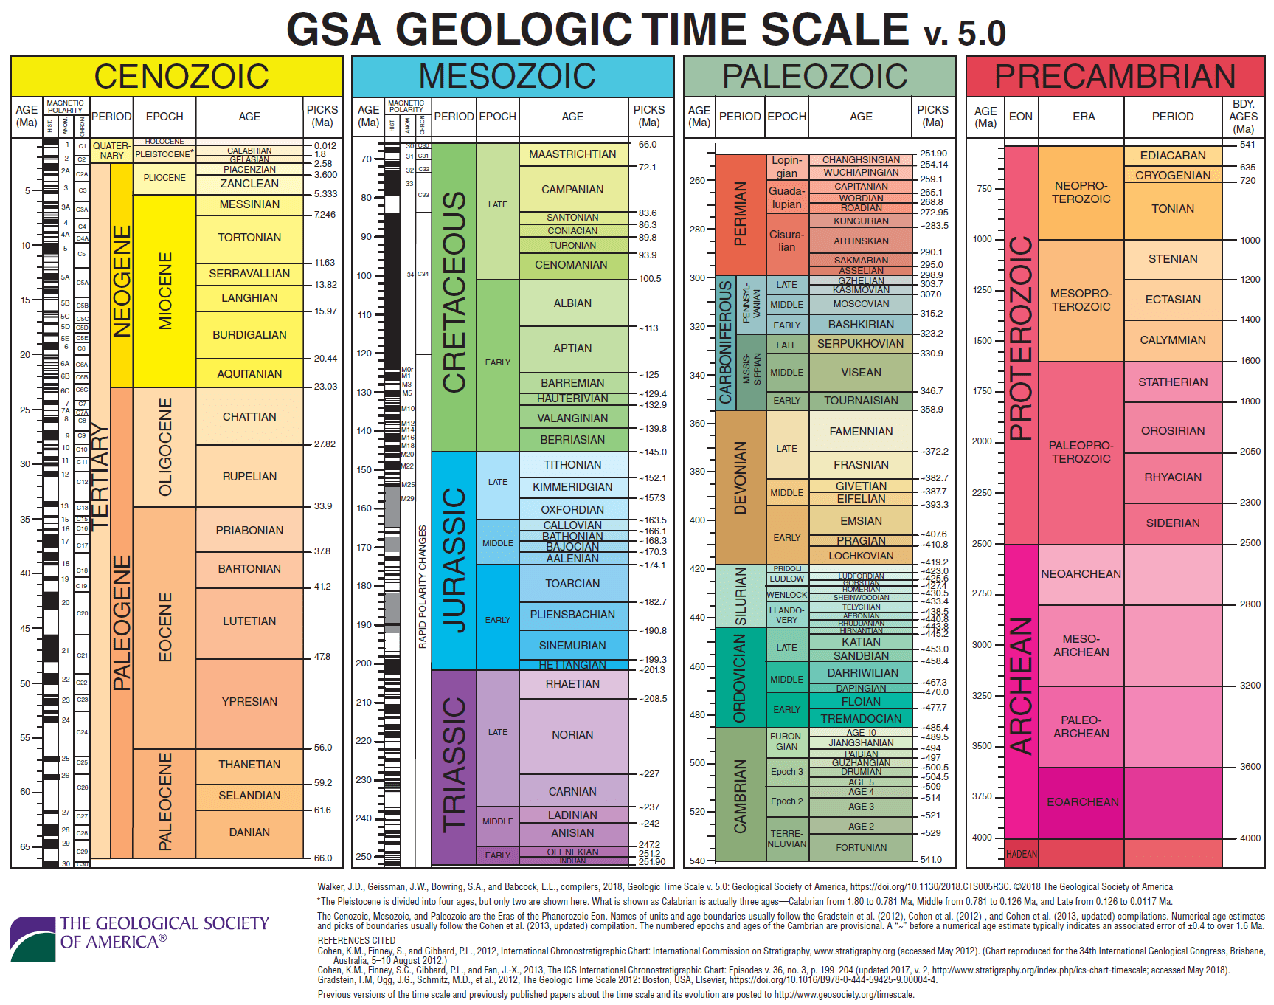 Geologic Time Scale by the Geologic Society of America